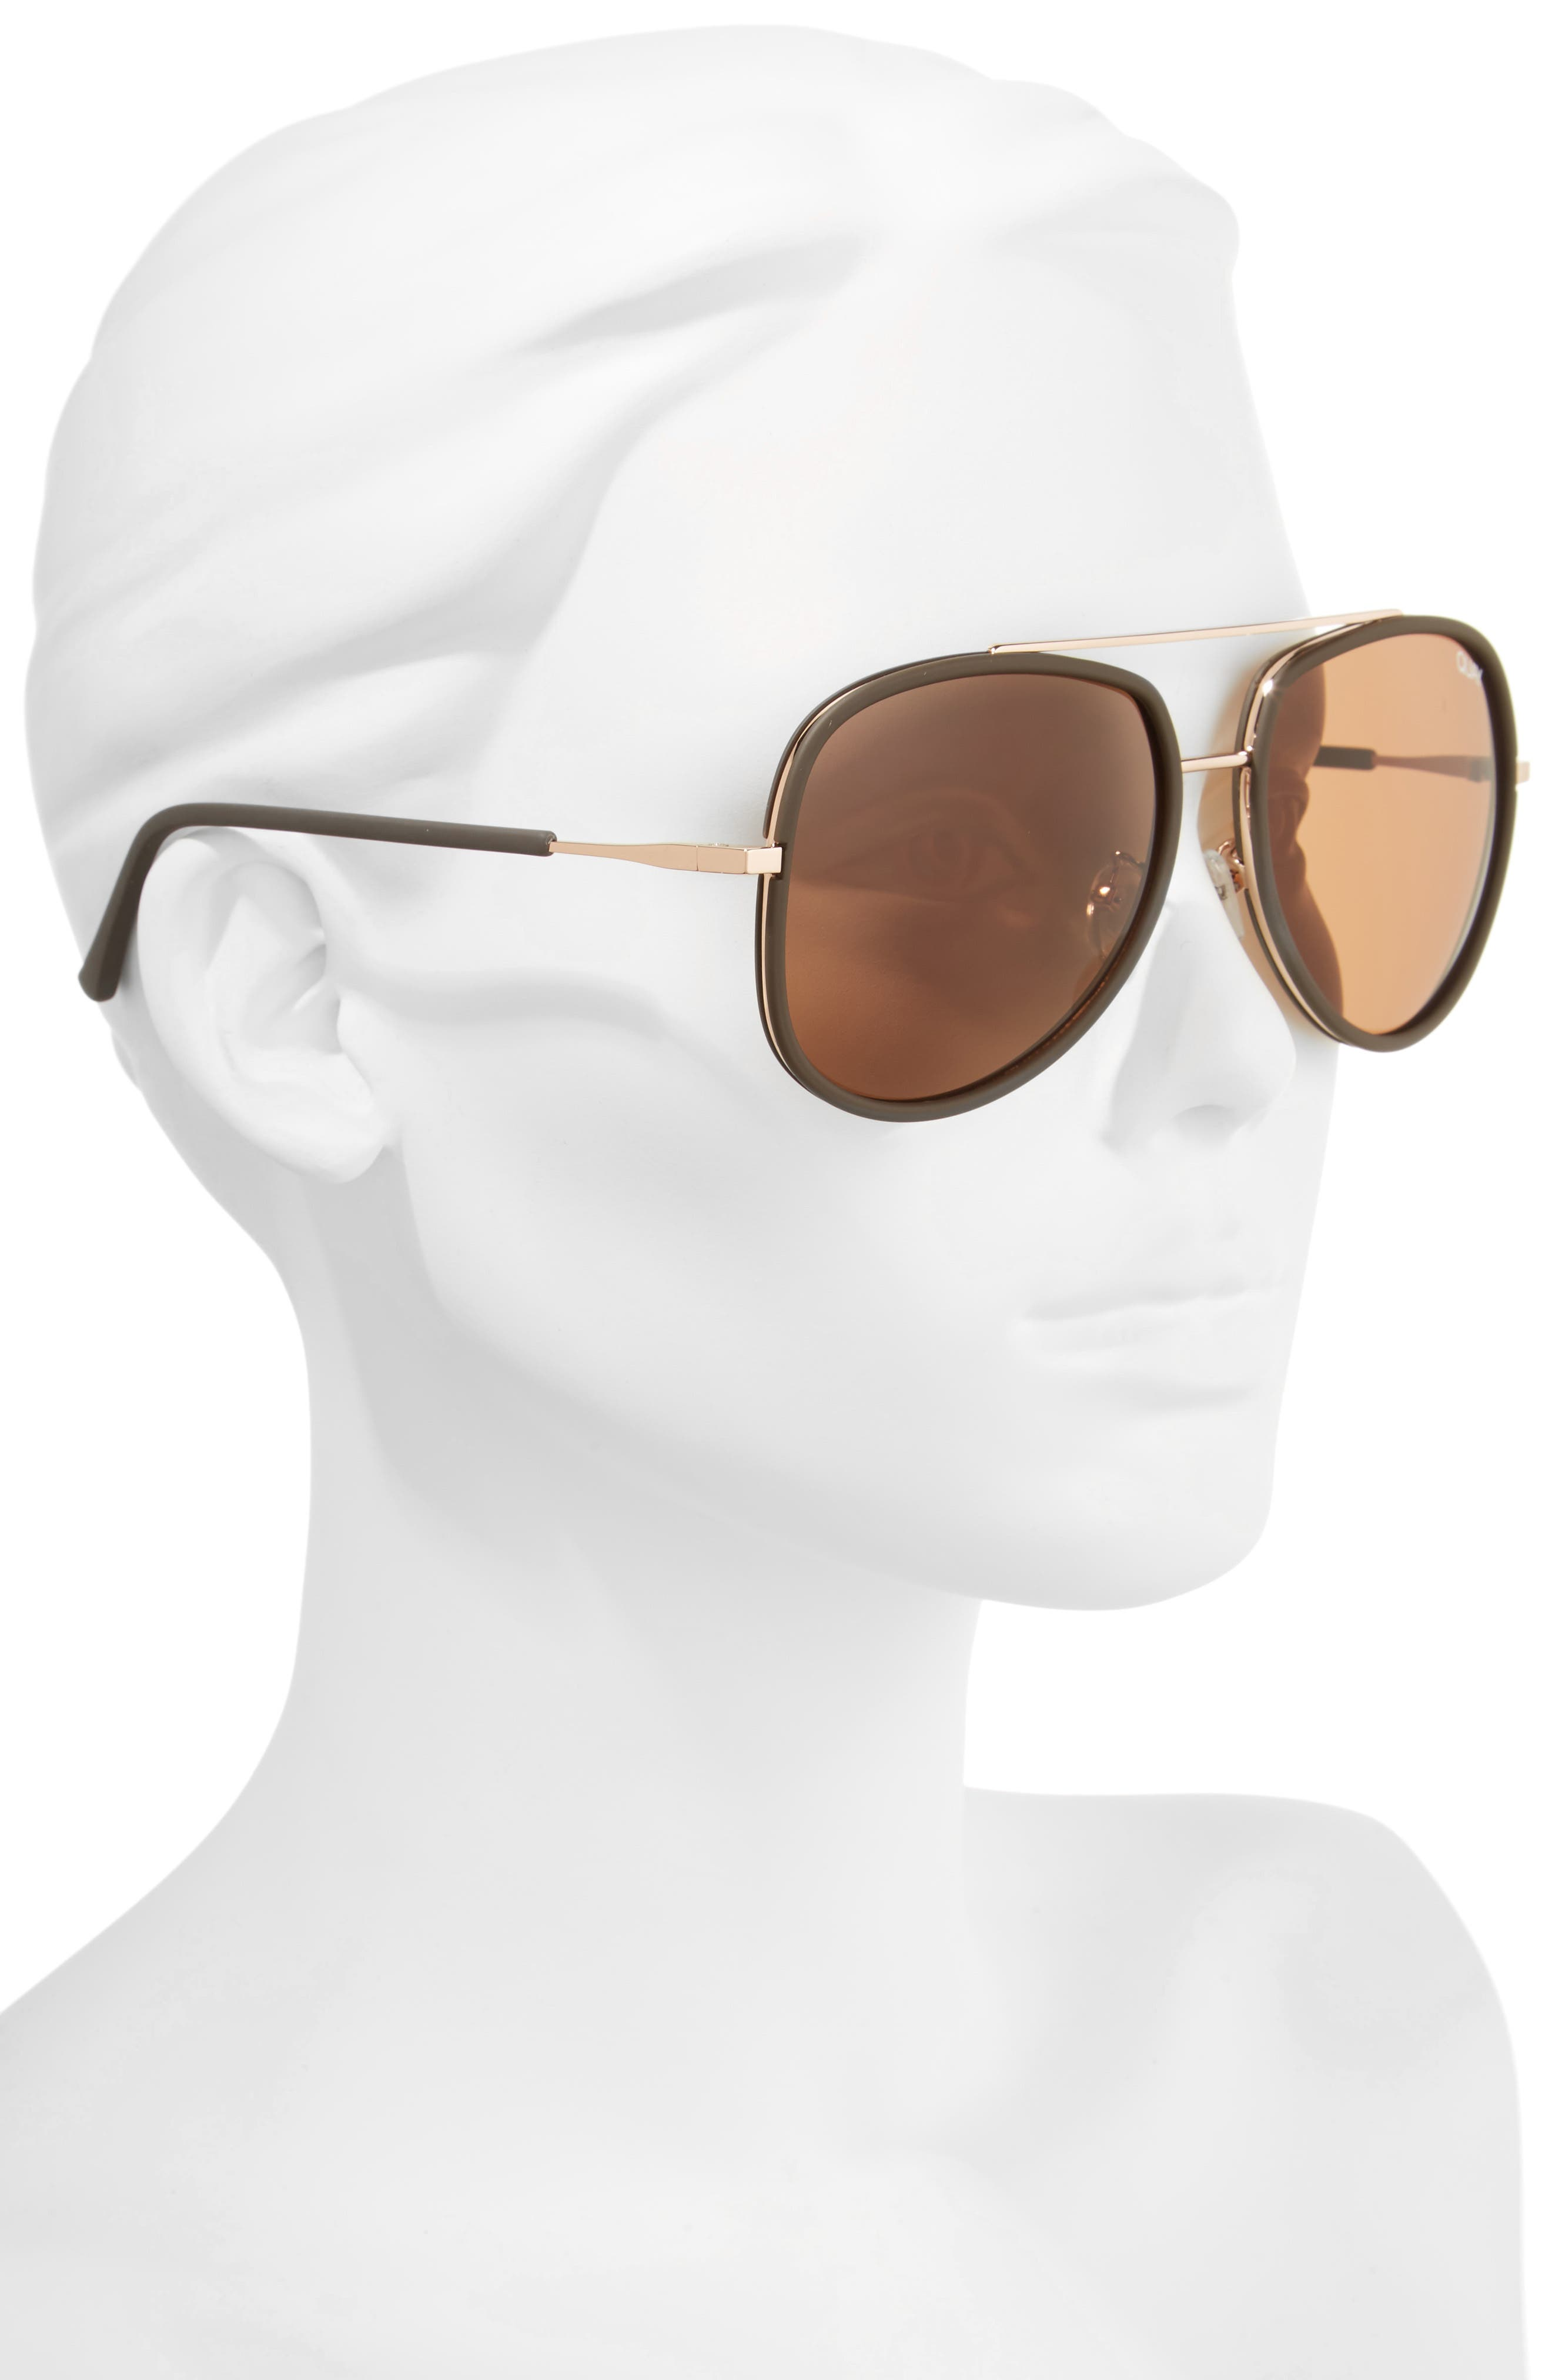 'Needing Fame' 65mm Aviator Sunglasses,                             Alternate thumbnail 2, color,                             201